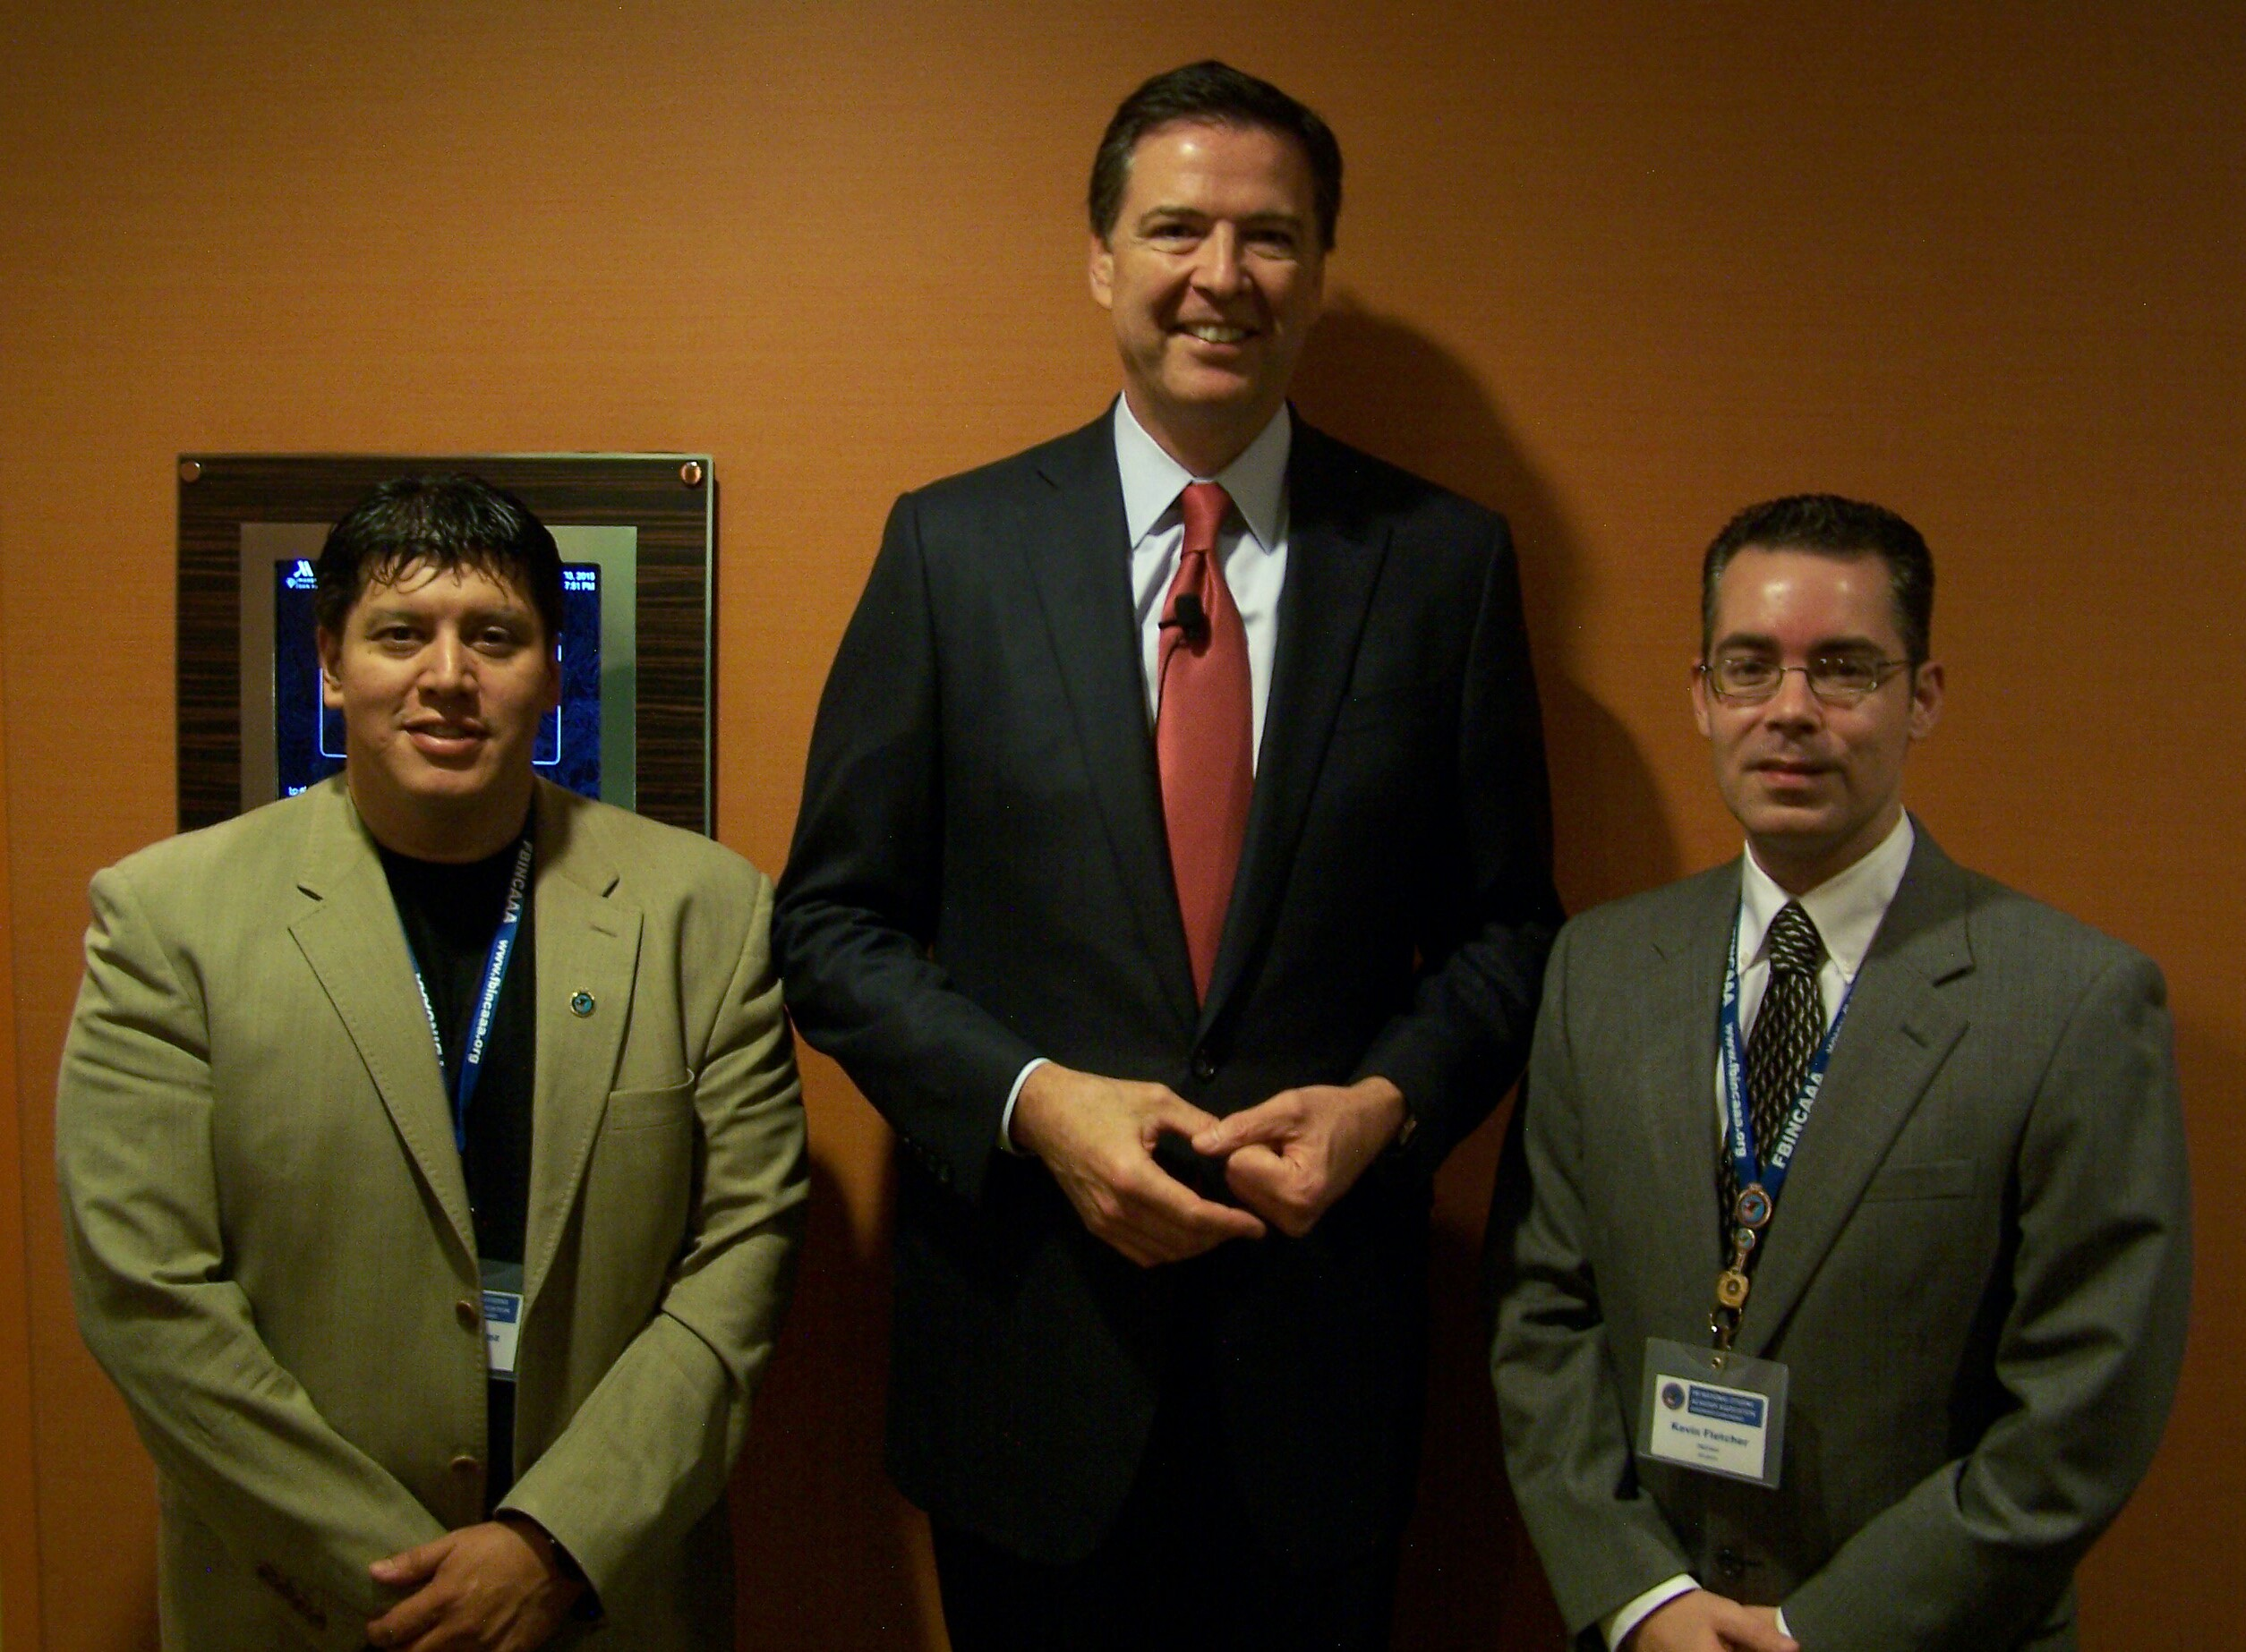 Alex, Director Comey, Kevin